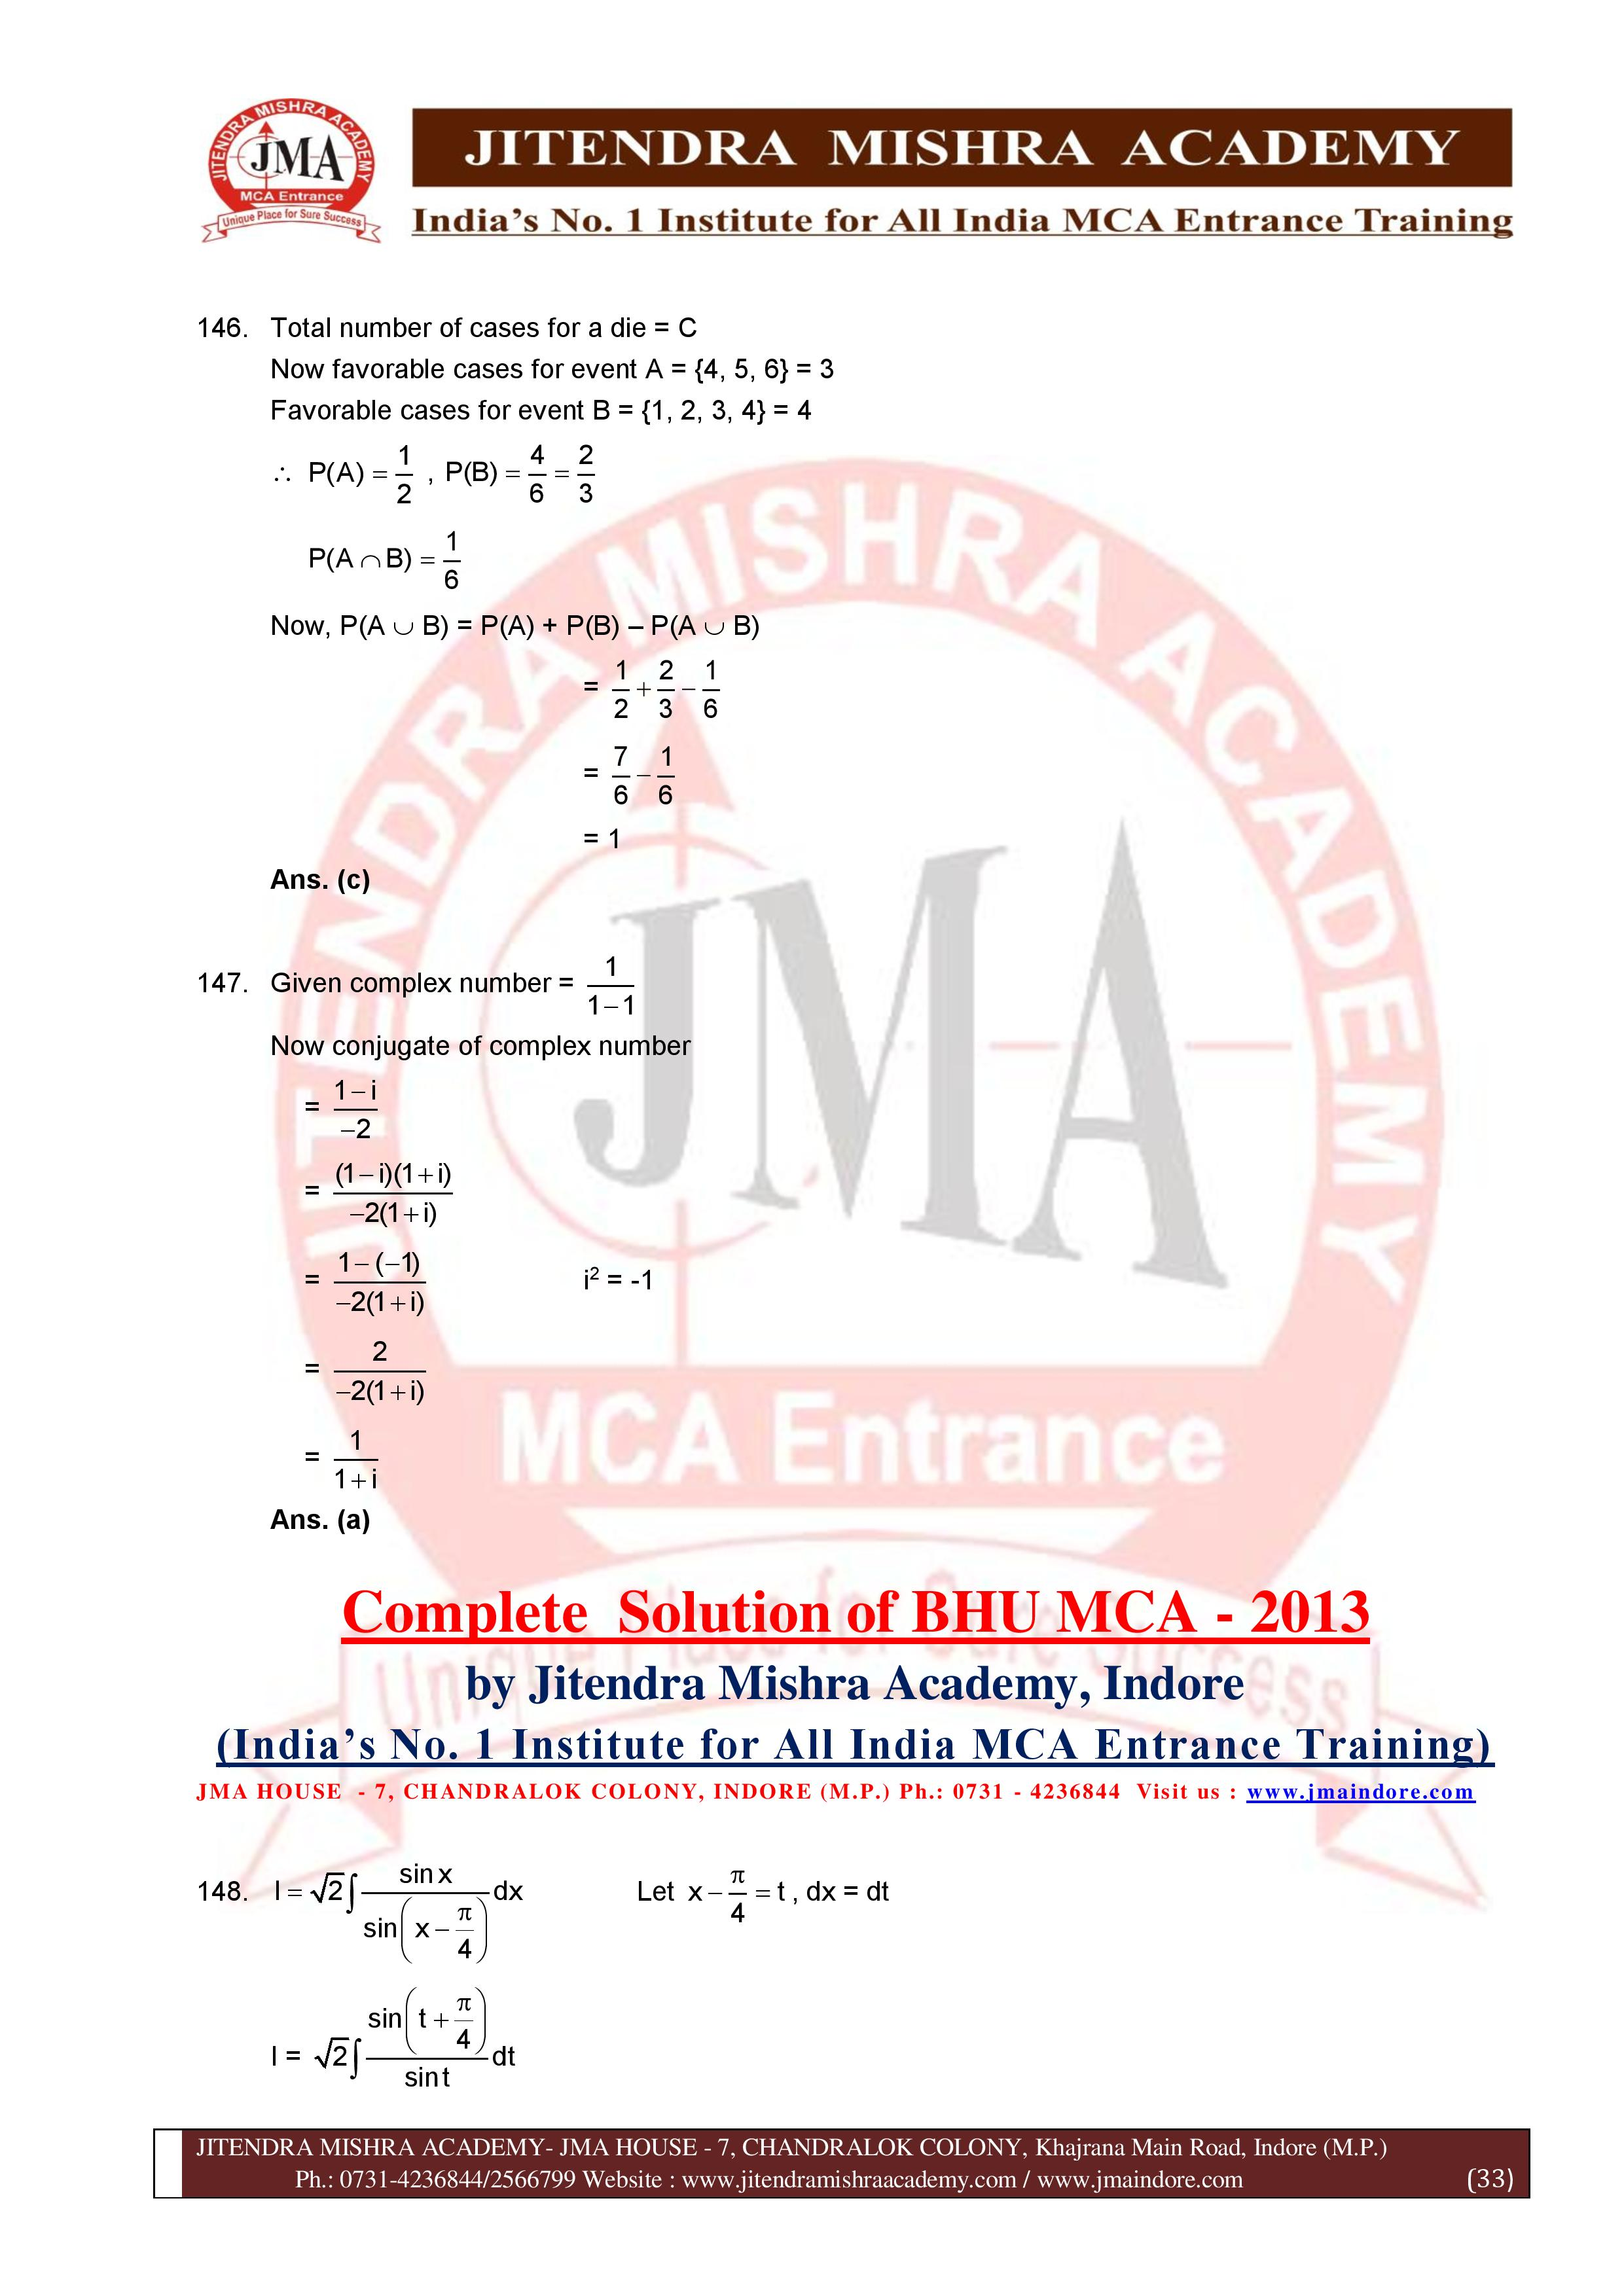 BHU 2013 SOLUTION (SET - 3) (06.07.16)-page-033